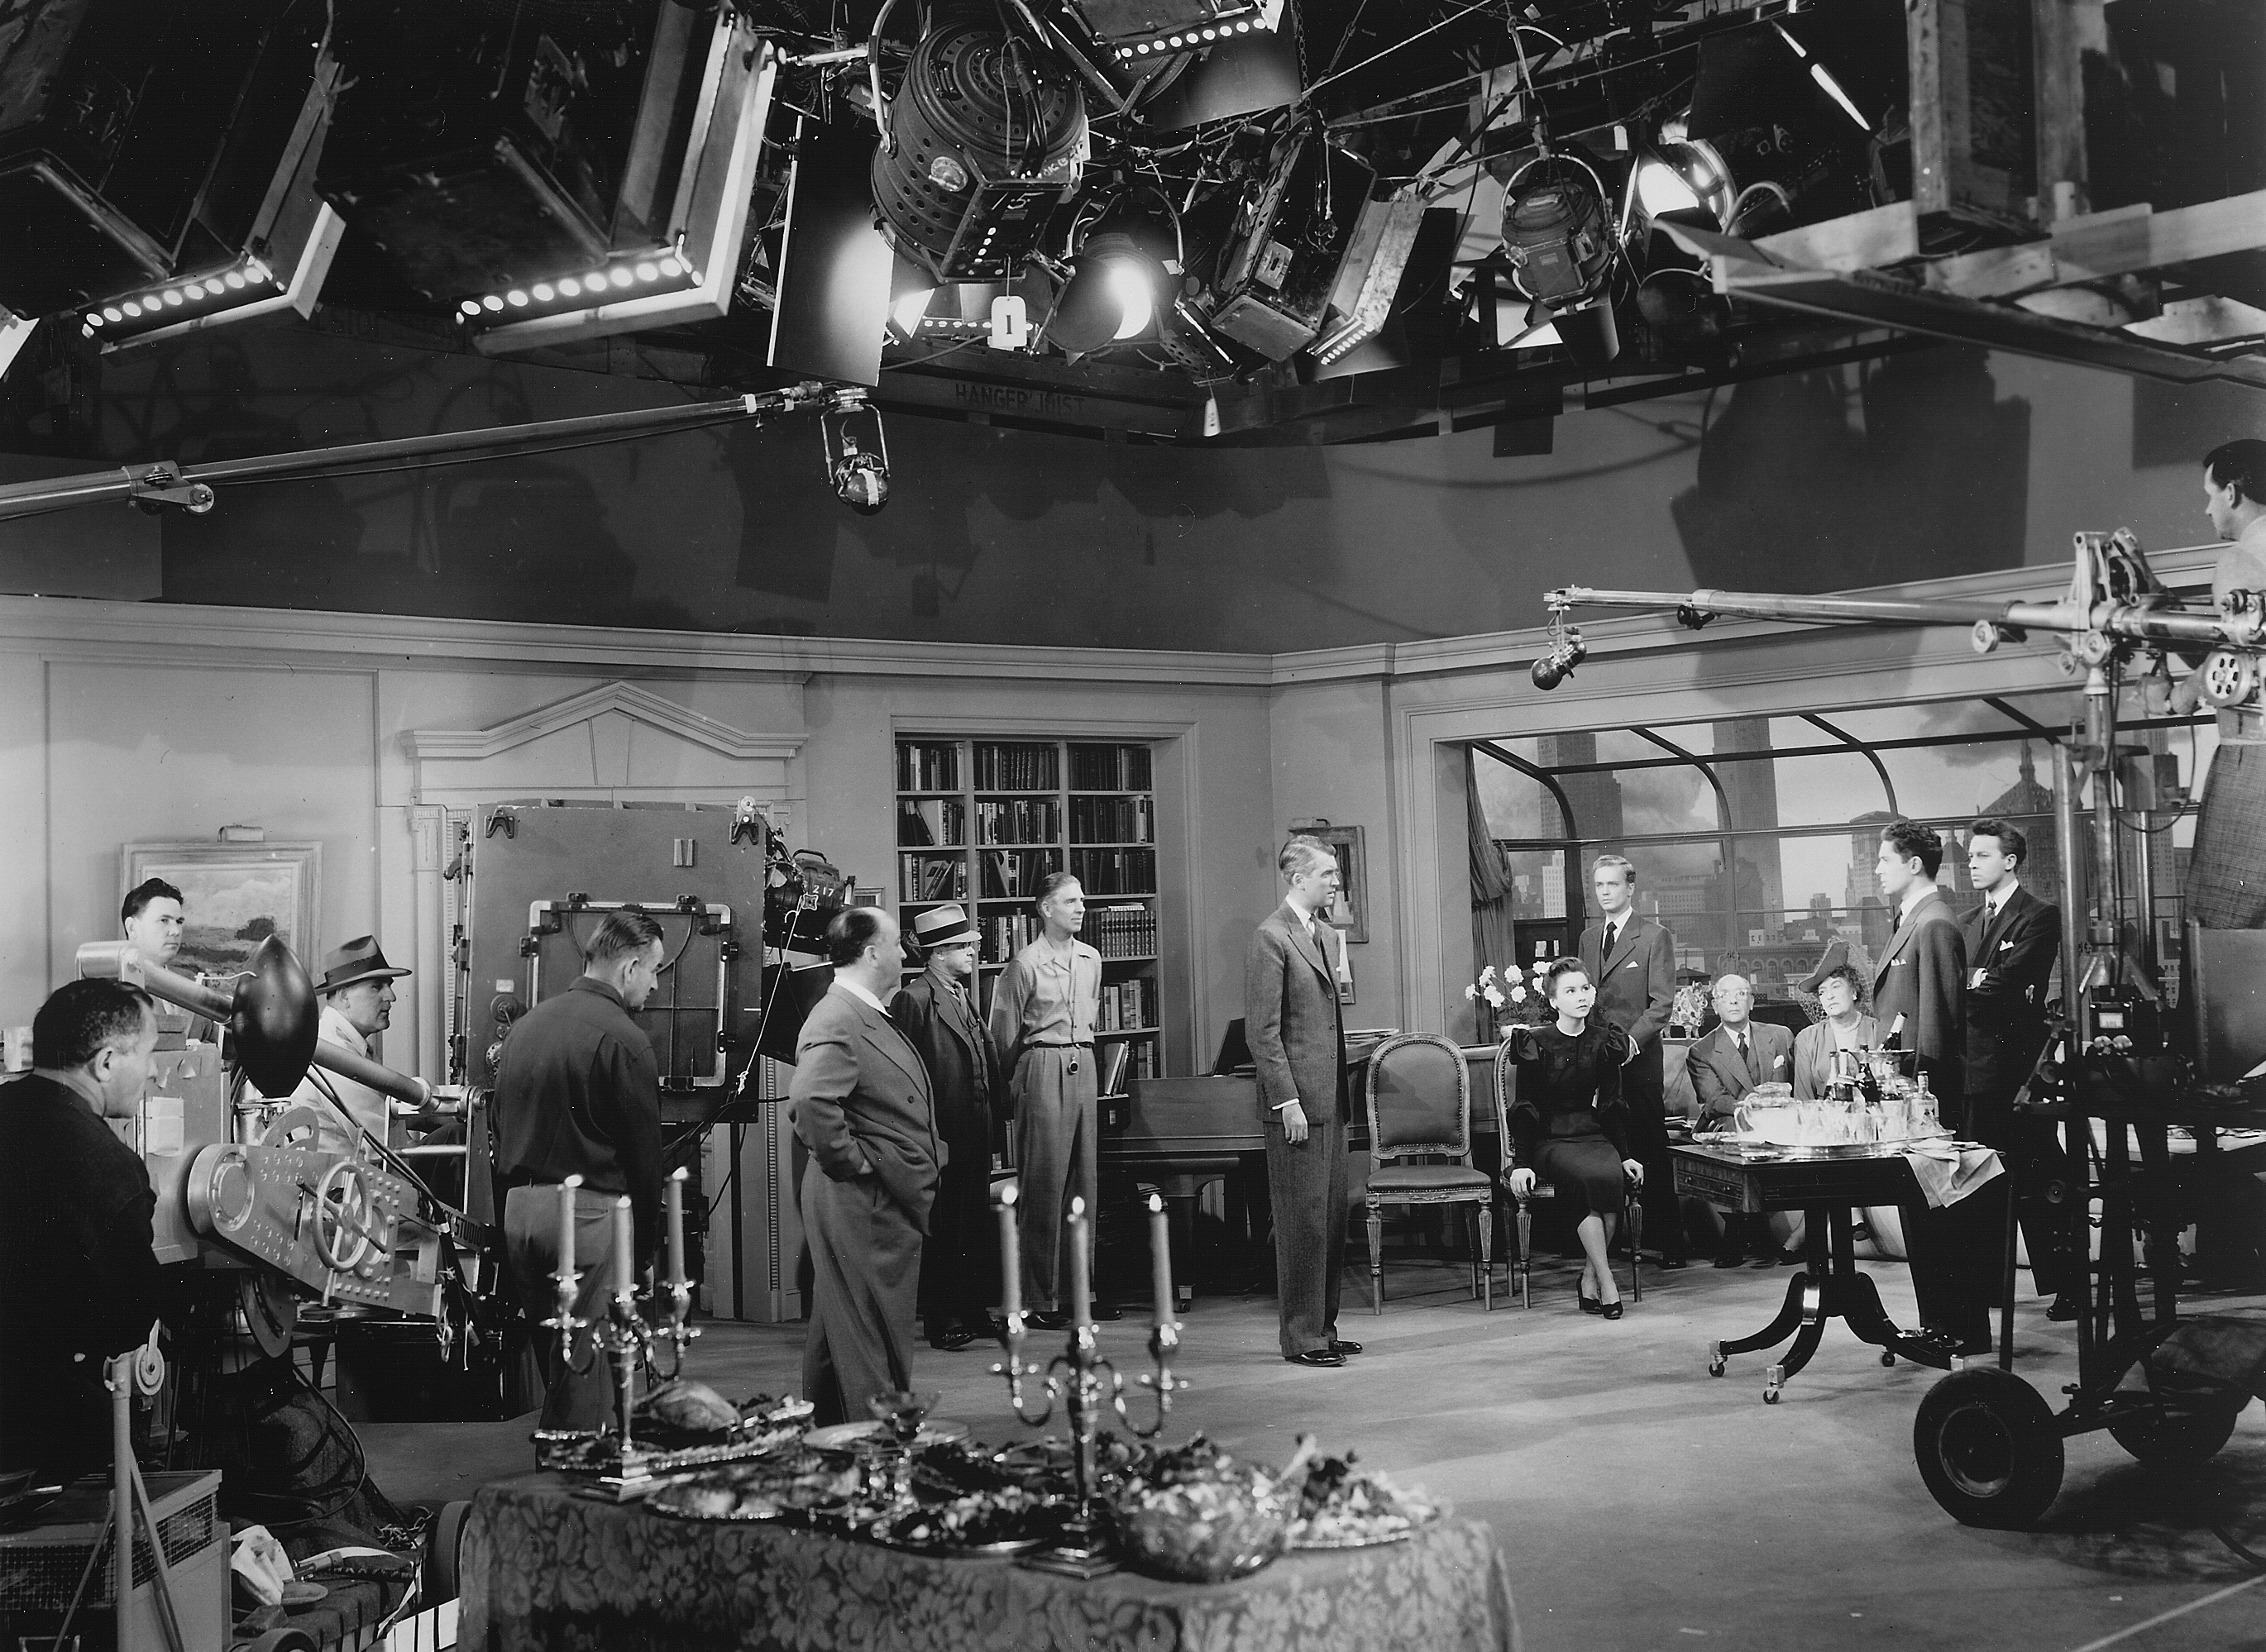 Hitchcock and his camera crew — including ASC members Joseph A. Valentine and William V. Skall (standing in front of camera) — rehearse to shoot one of the 10 lengthy shots (up to 10 minutes each) seen in the thriller Rope (1948), which was written, choreographed, photographed and edited to appear to be one single, continuous shot taking place in real time. This was also the director's first Technicolor project.